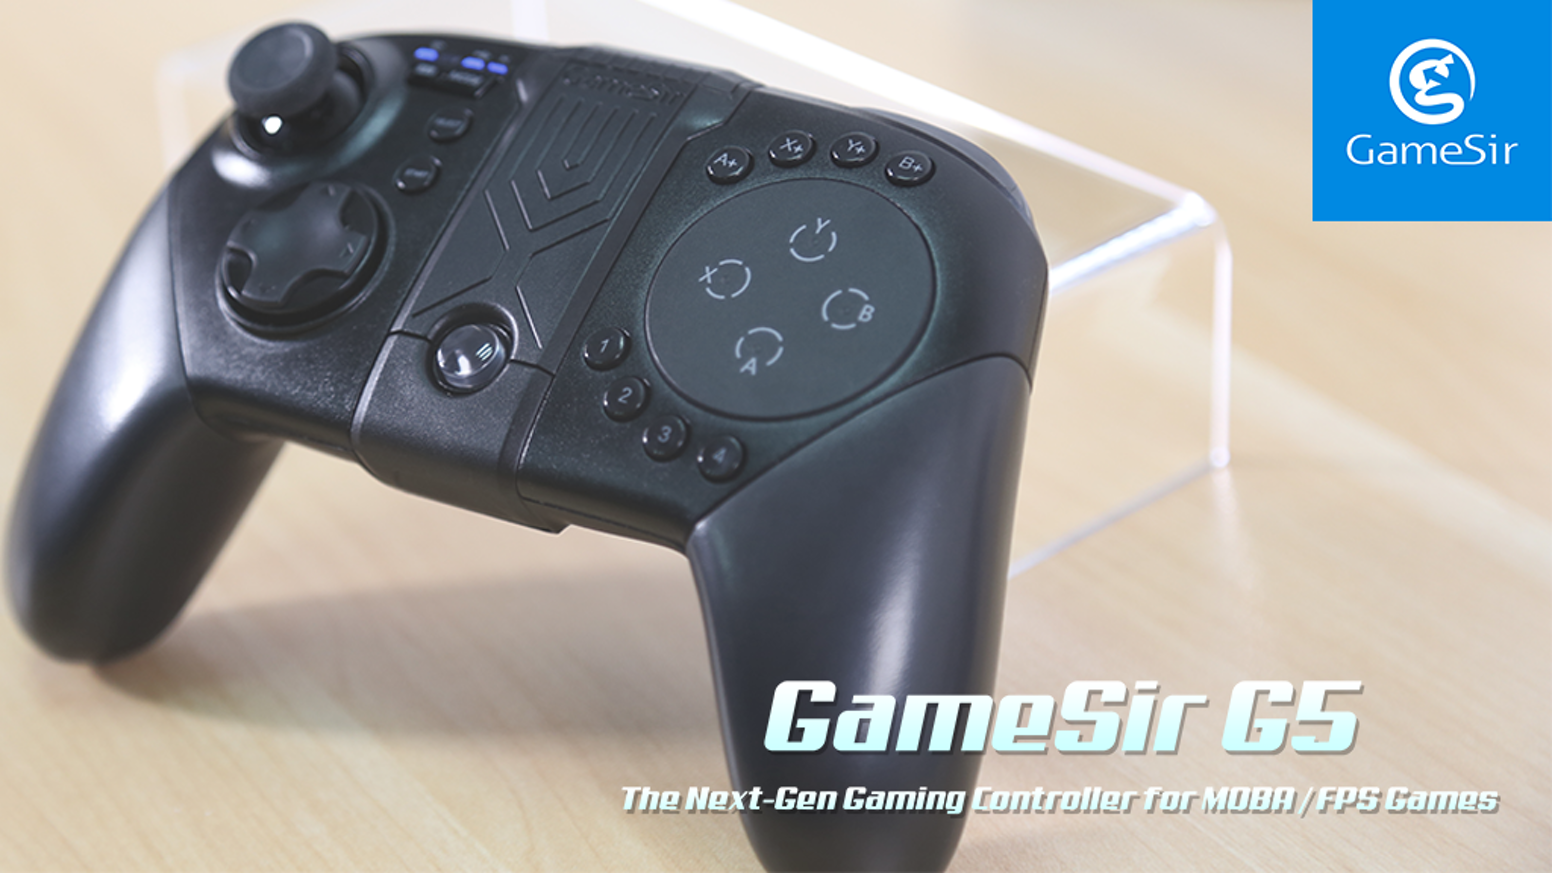 GameSir G5: The next-gen gaming controller for MOBAs & FPSs